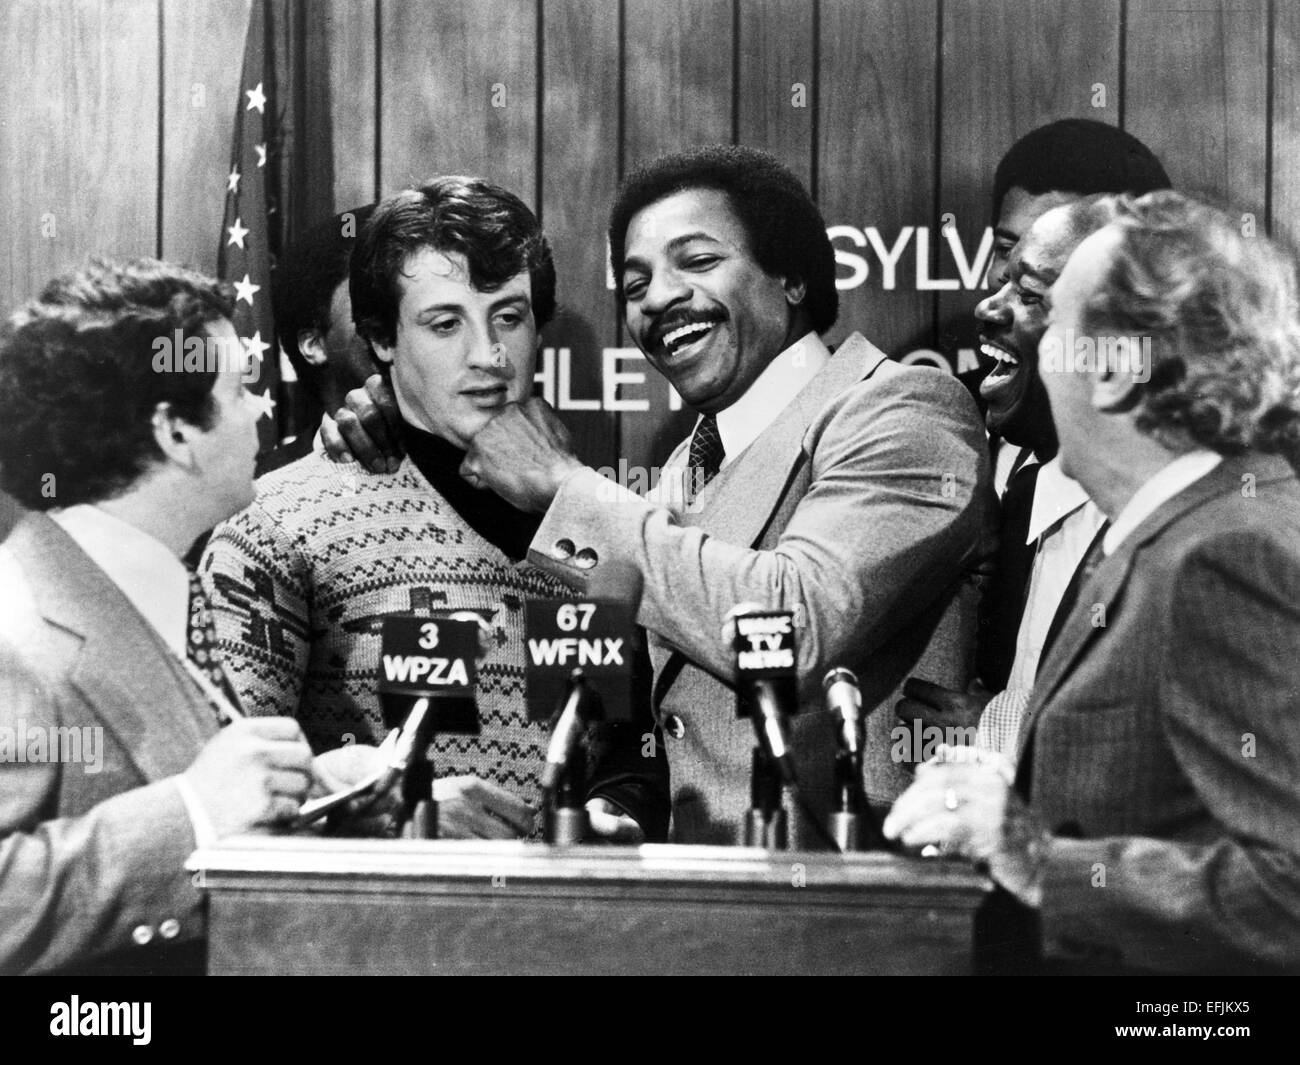 sylvester stallone carl weathers rocky 1976 stockfoto. Black Bedroom Furniture Sets. Home Design Ideas